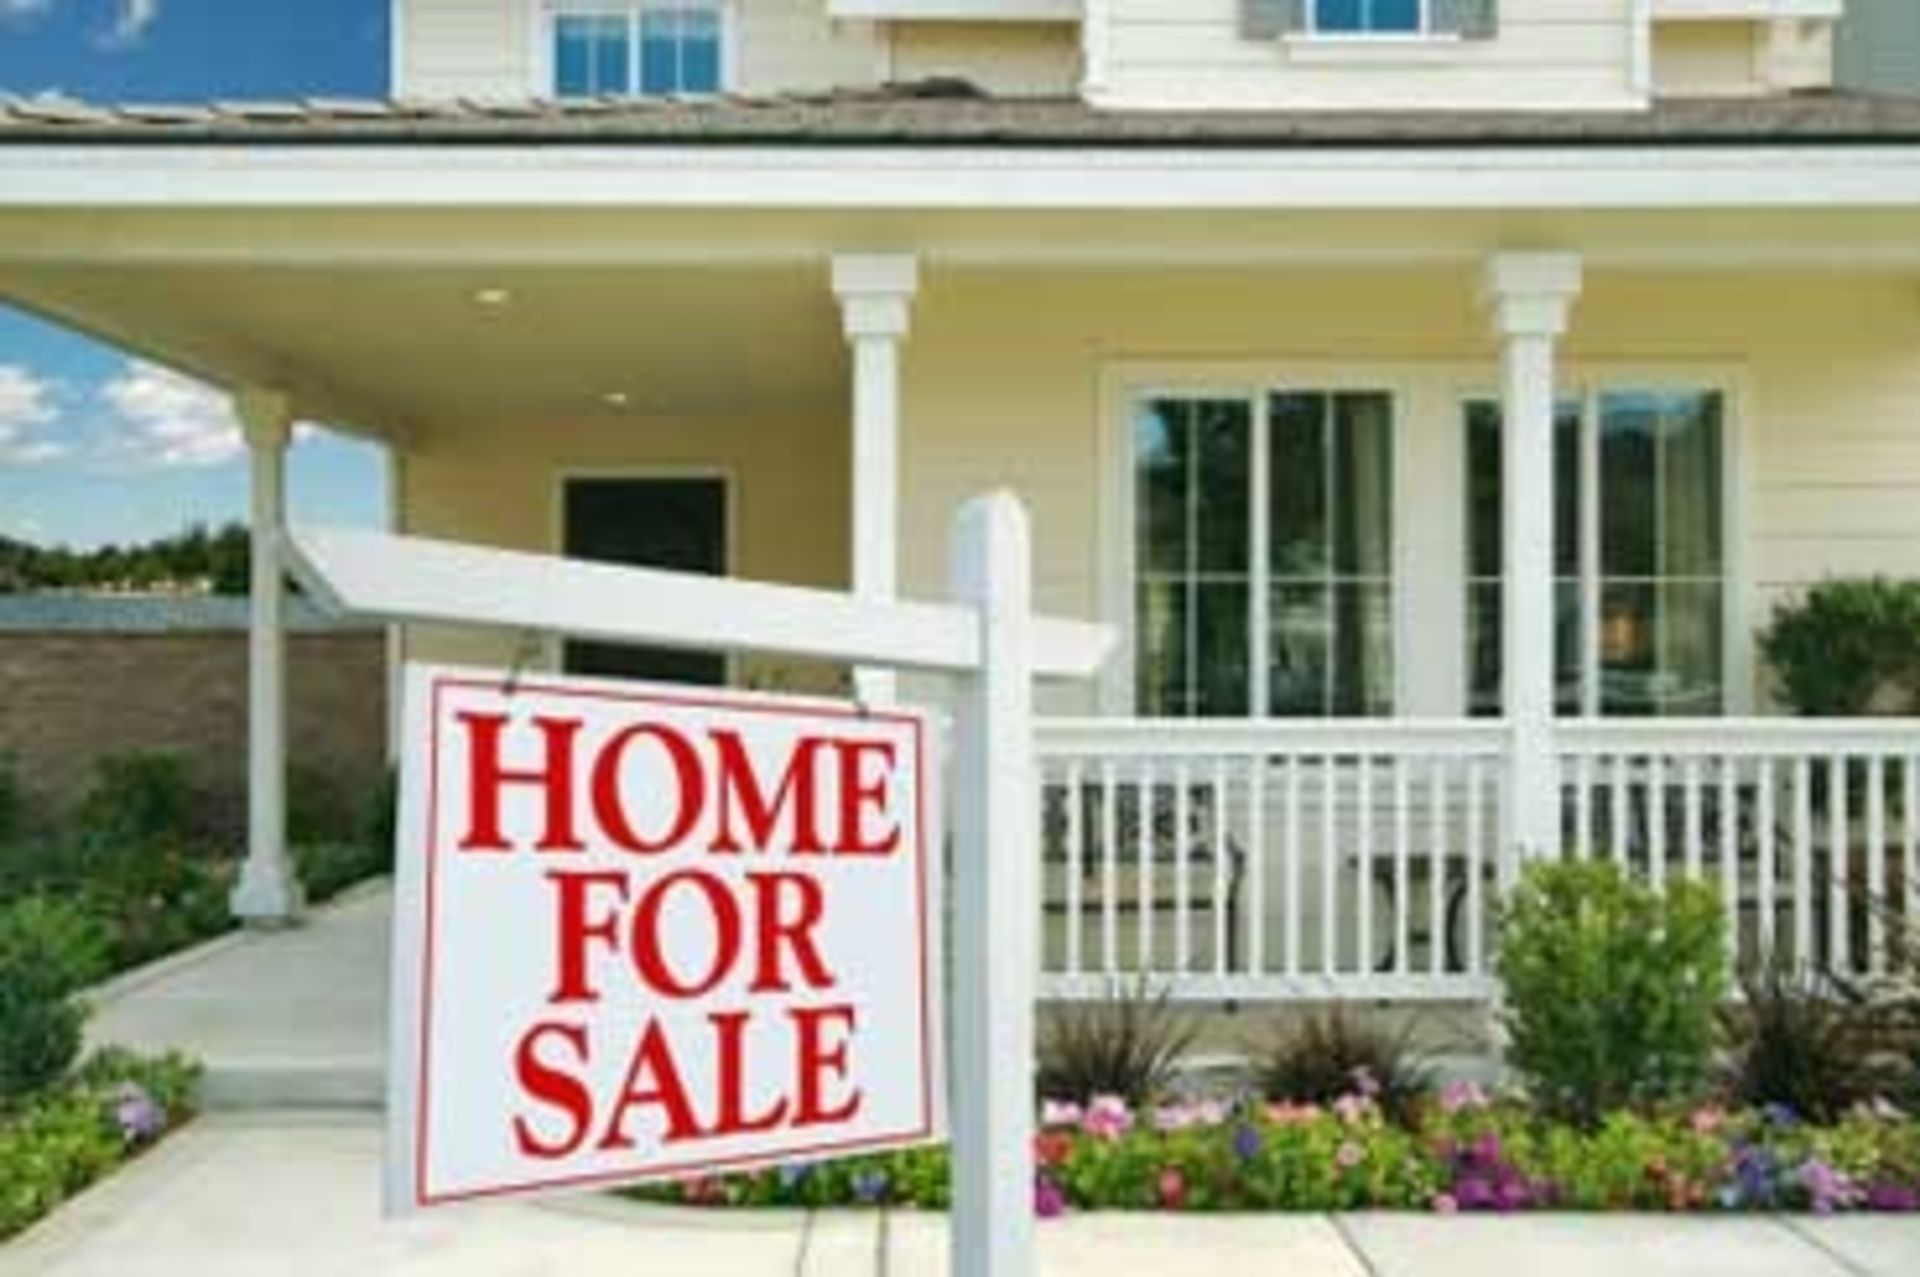 (Not So Obvious) Tips for First-Time Buyers